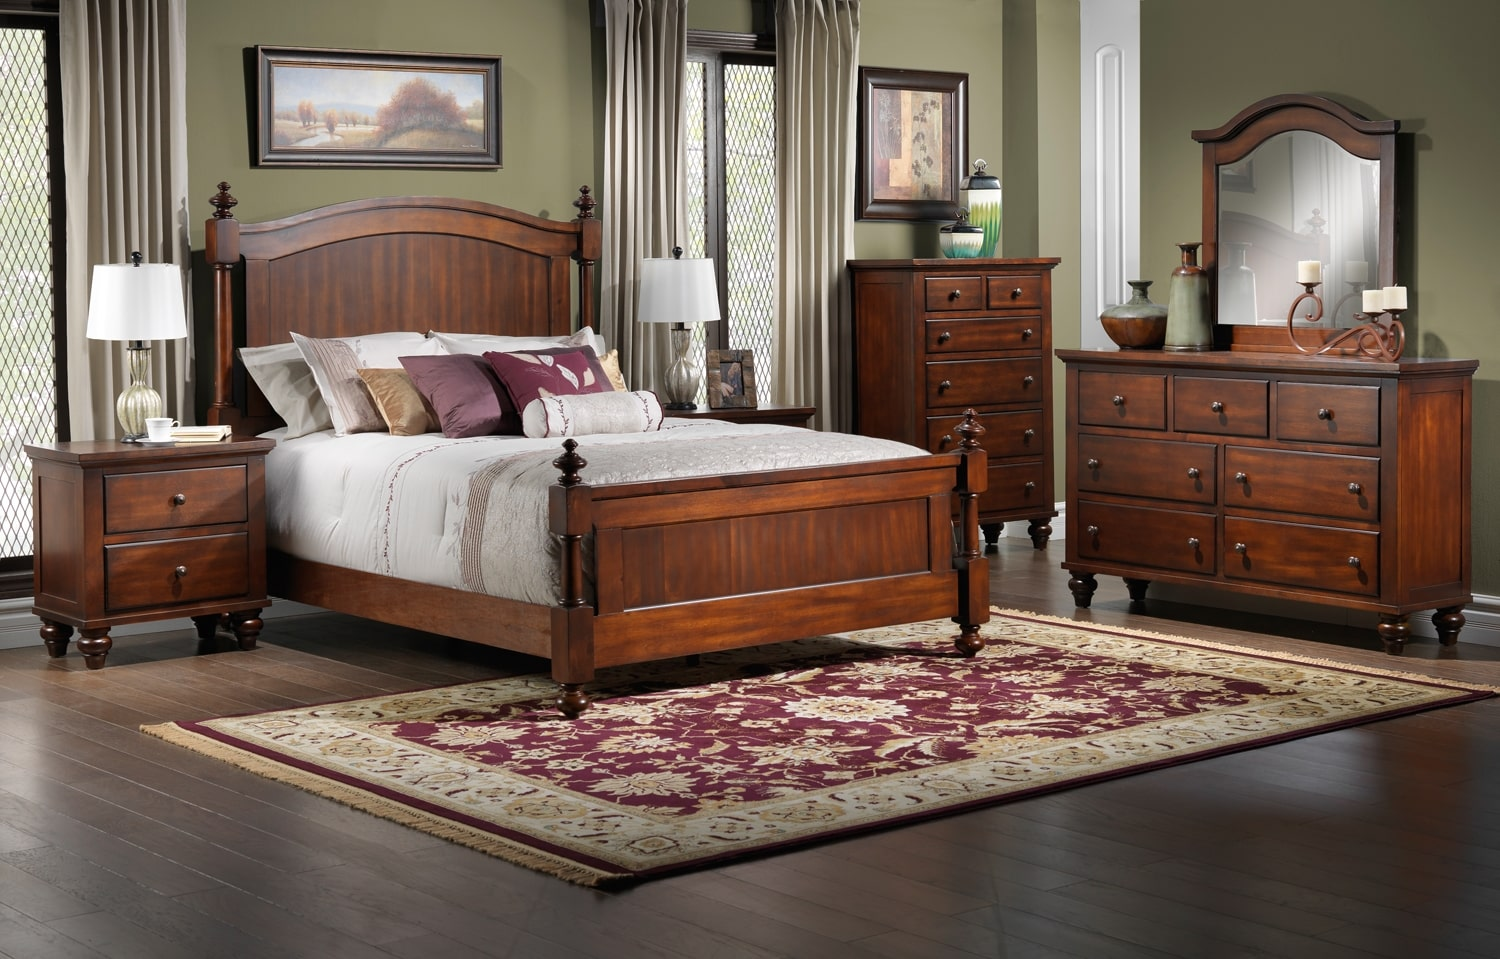 Palisade Bedroom Collection Leon S Palisade Bedroom Collection